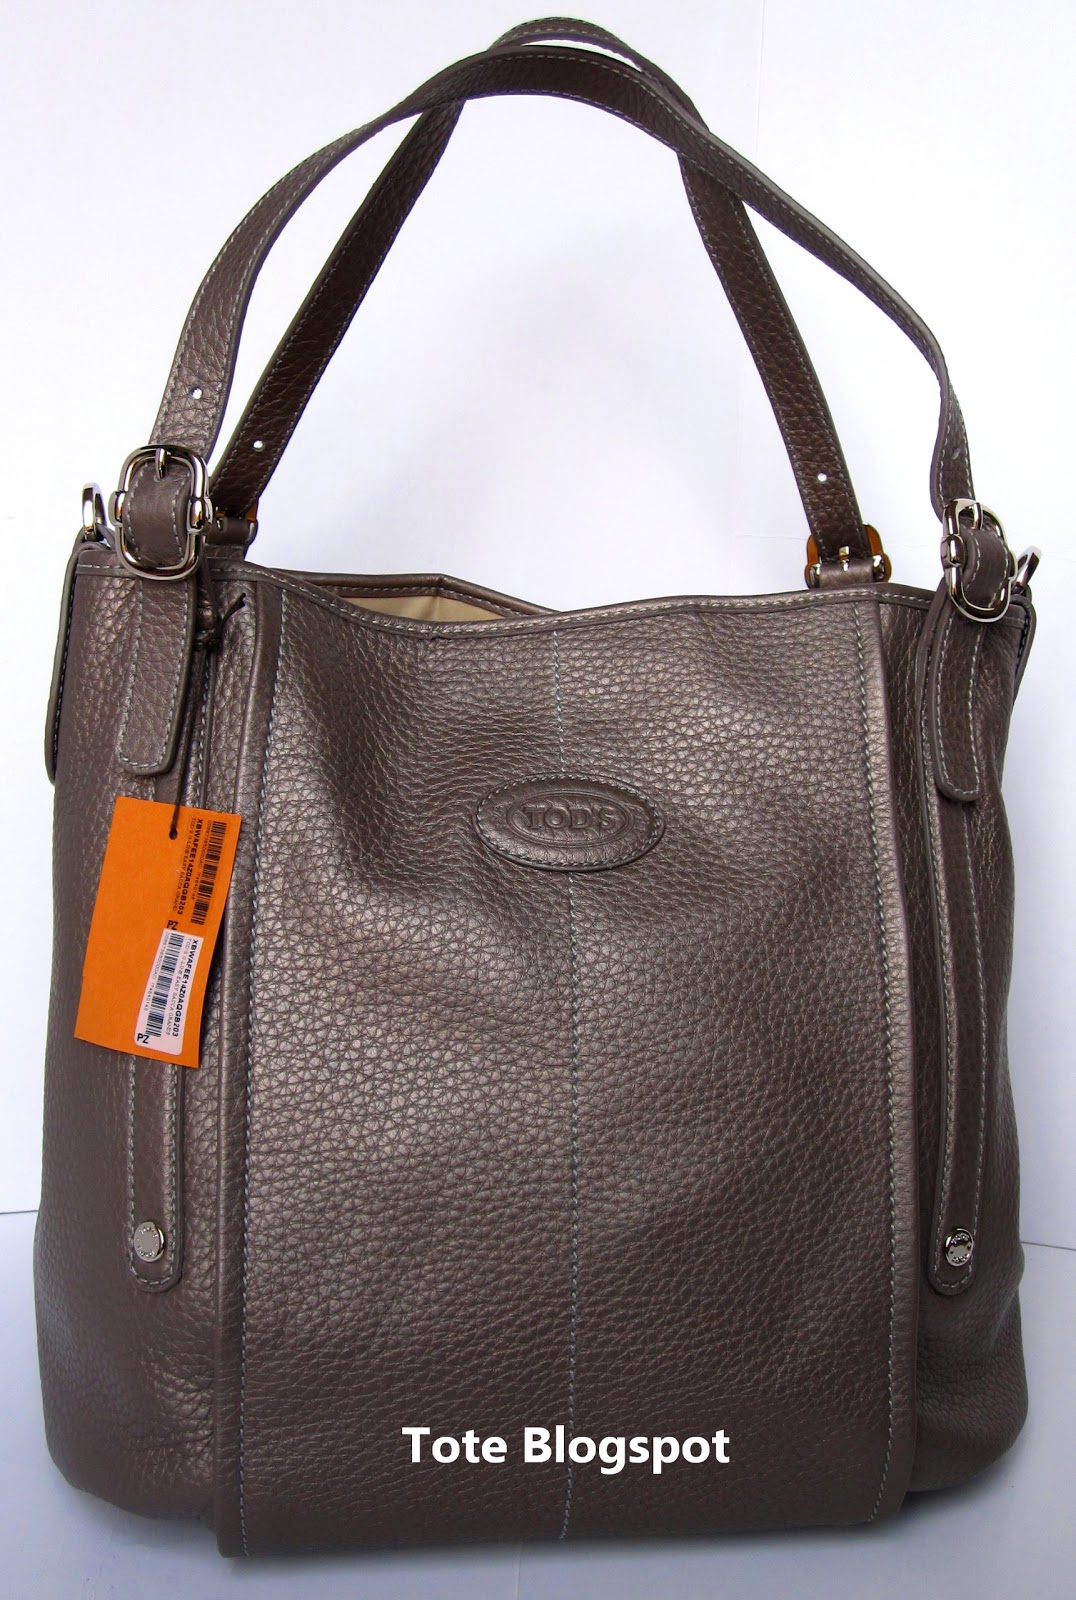 87a88188f799 Tote to Toe